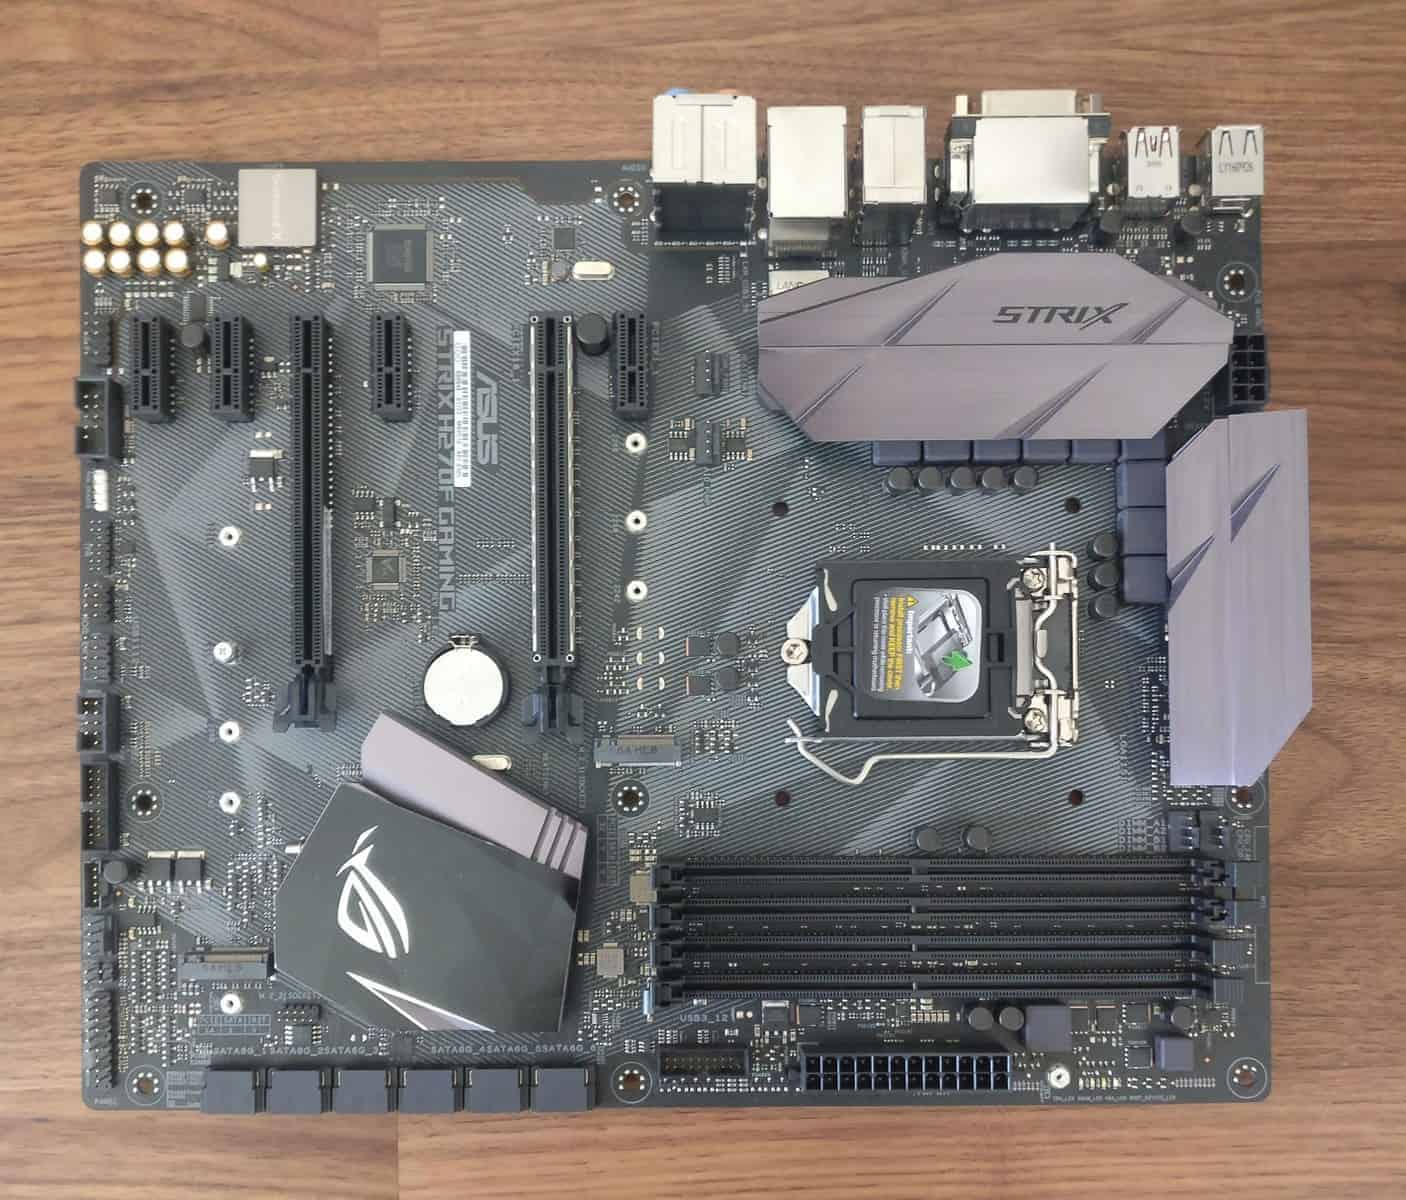 Asus Strix H270F ROG Gaming Motherboard Review - The Streaming Blog